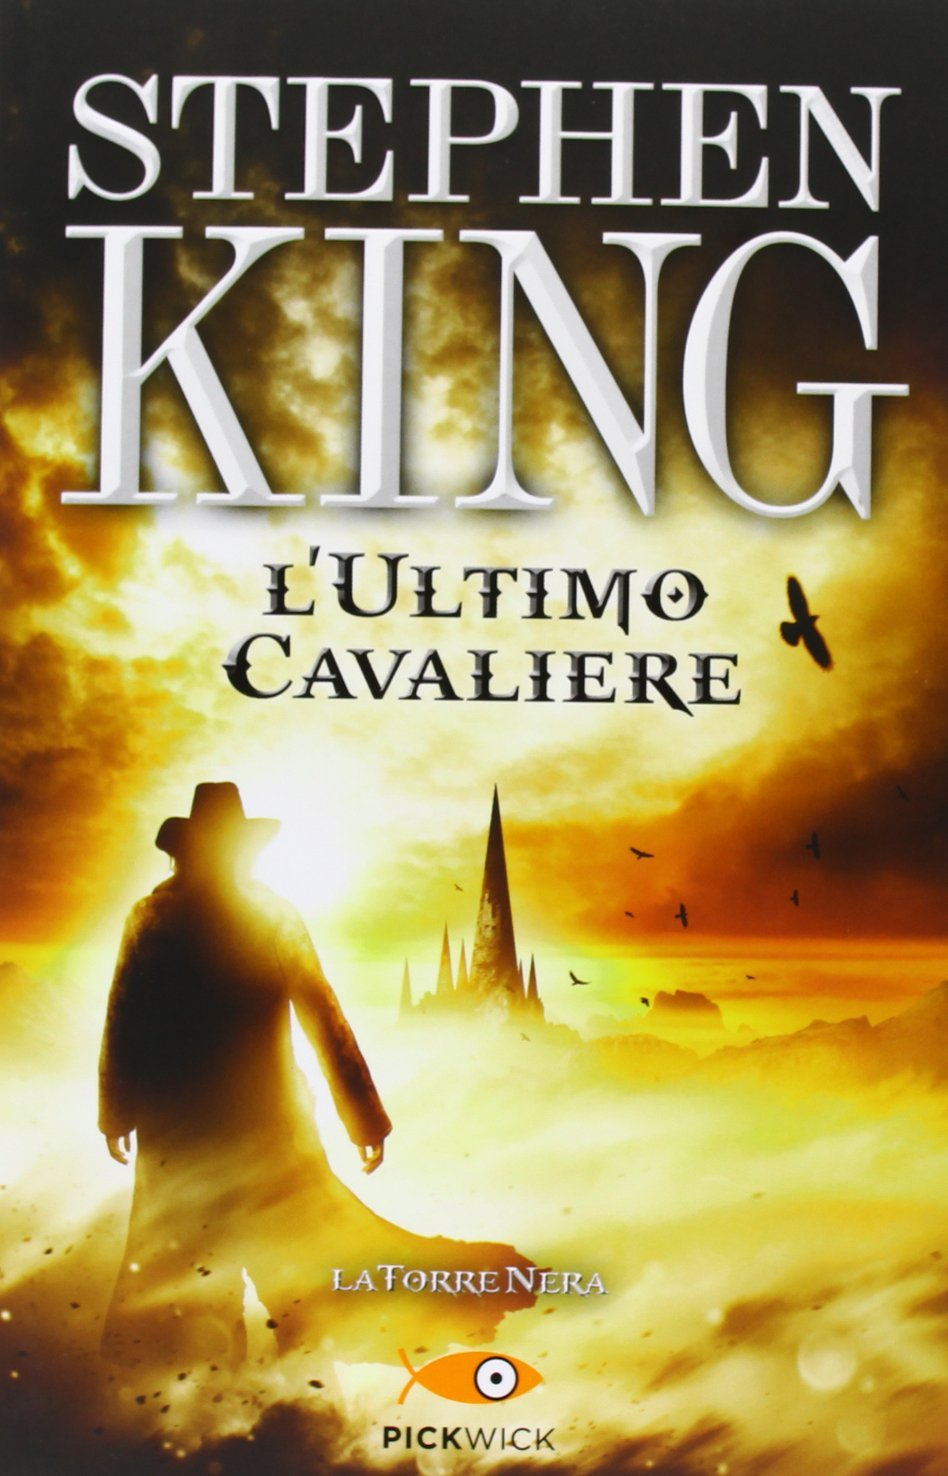 La torre nera vol. I e II – Stephen King